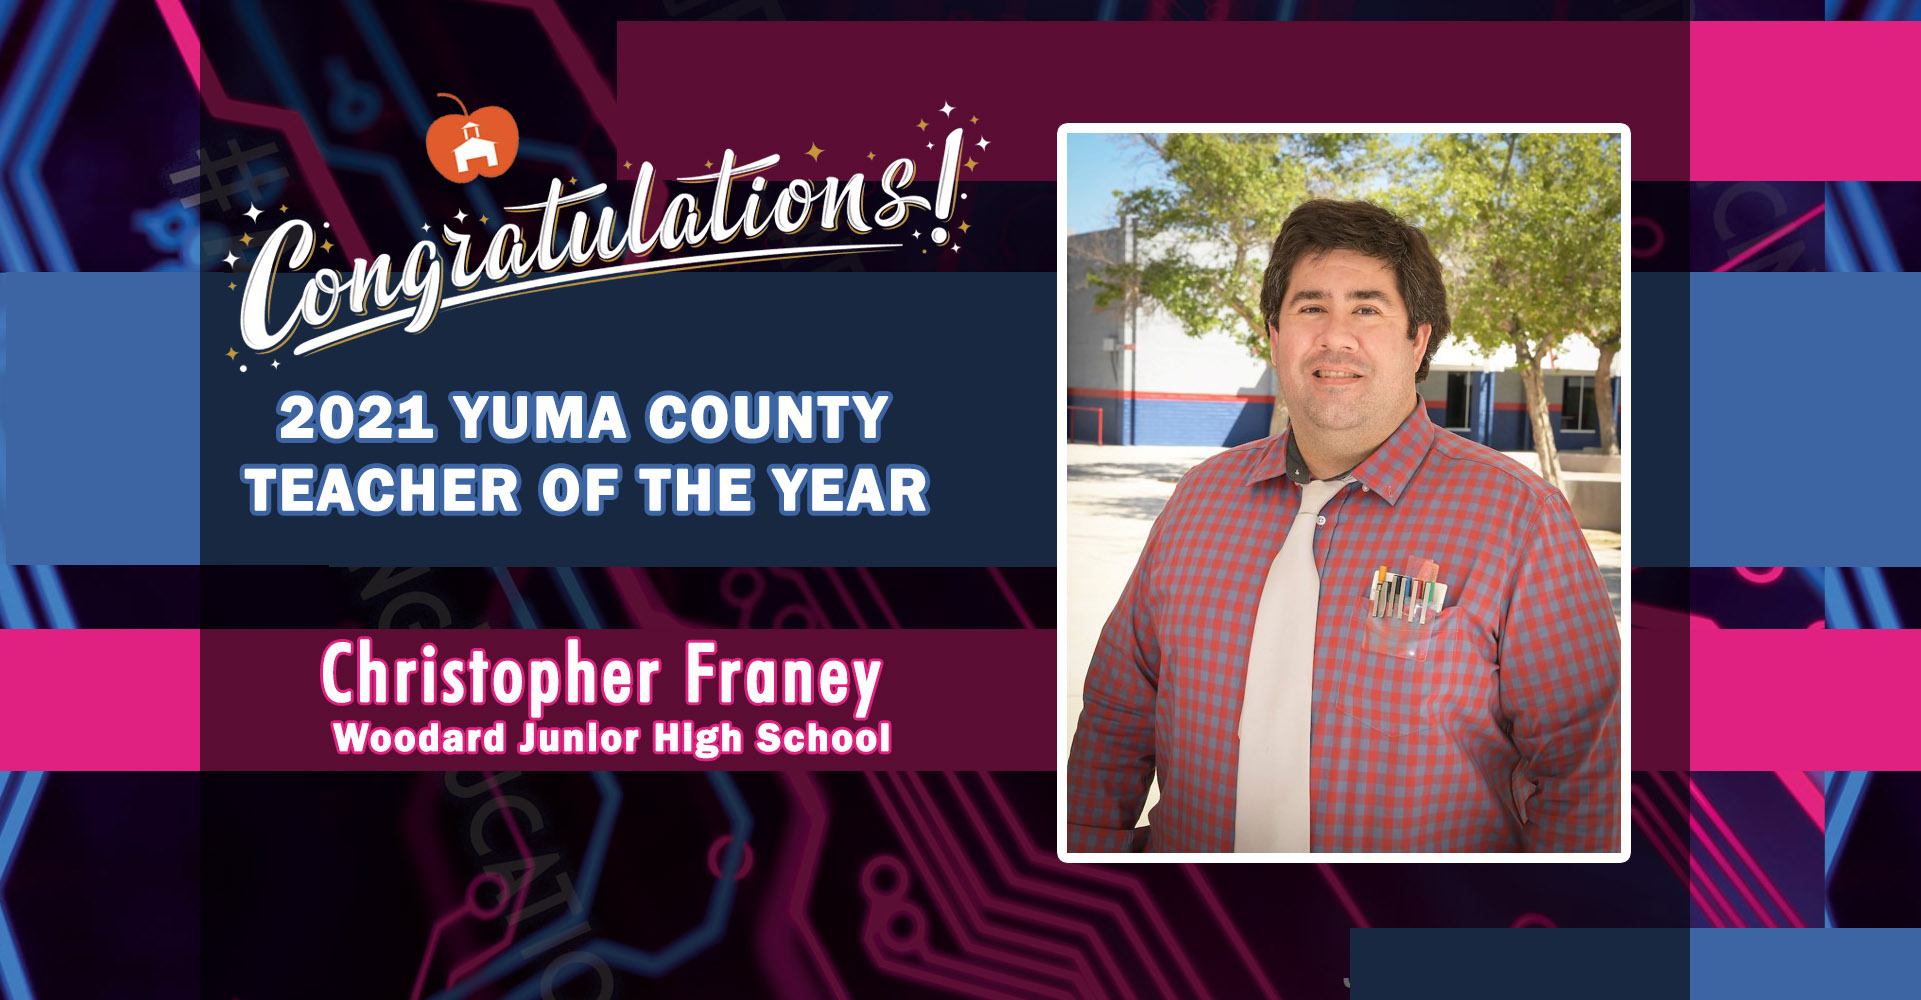 Yuma County Teacher of the Year